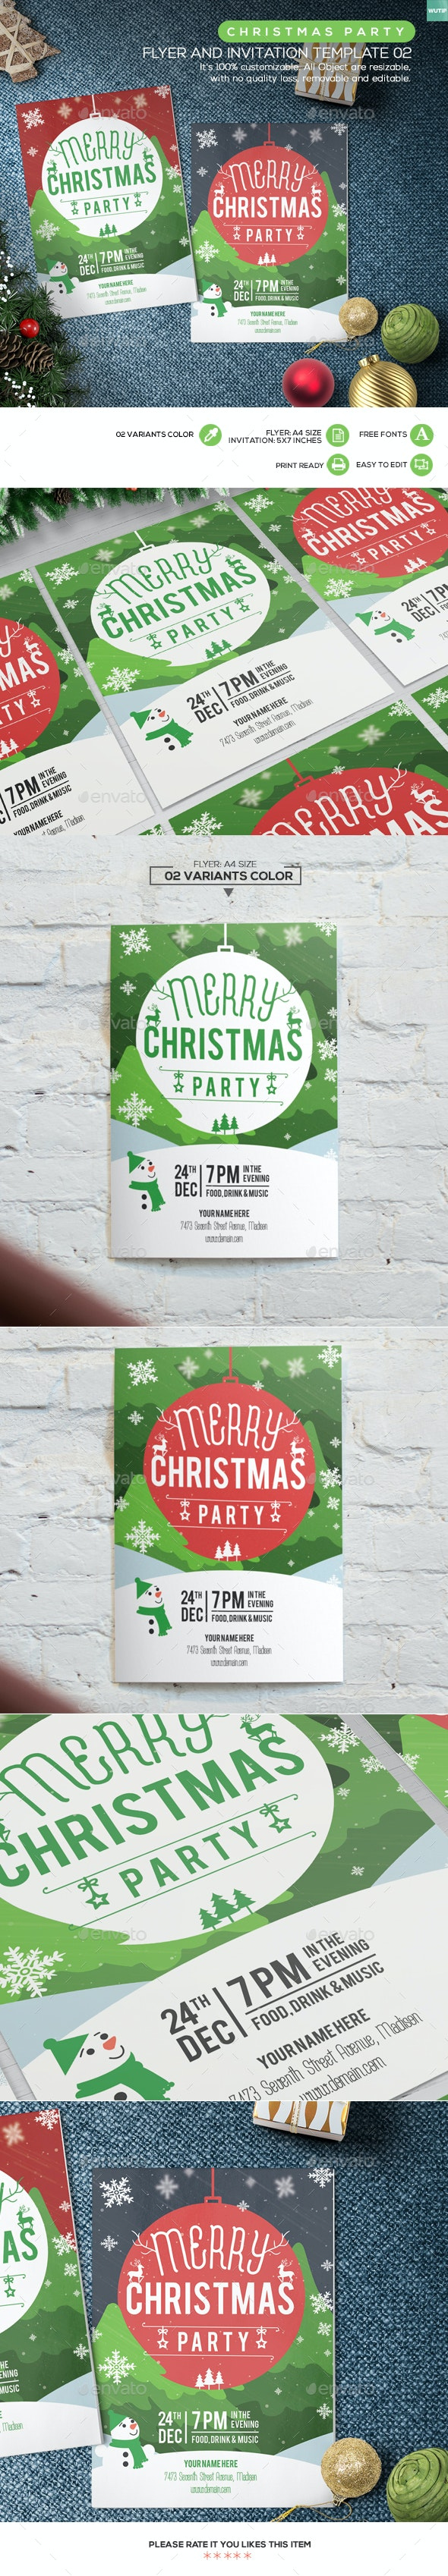 Christmas Party Flyer and Invitation Template 02 - Holidays Events